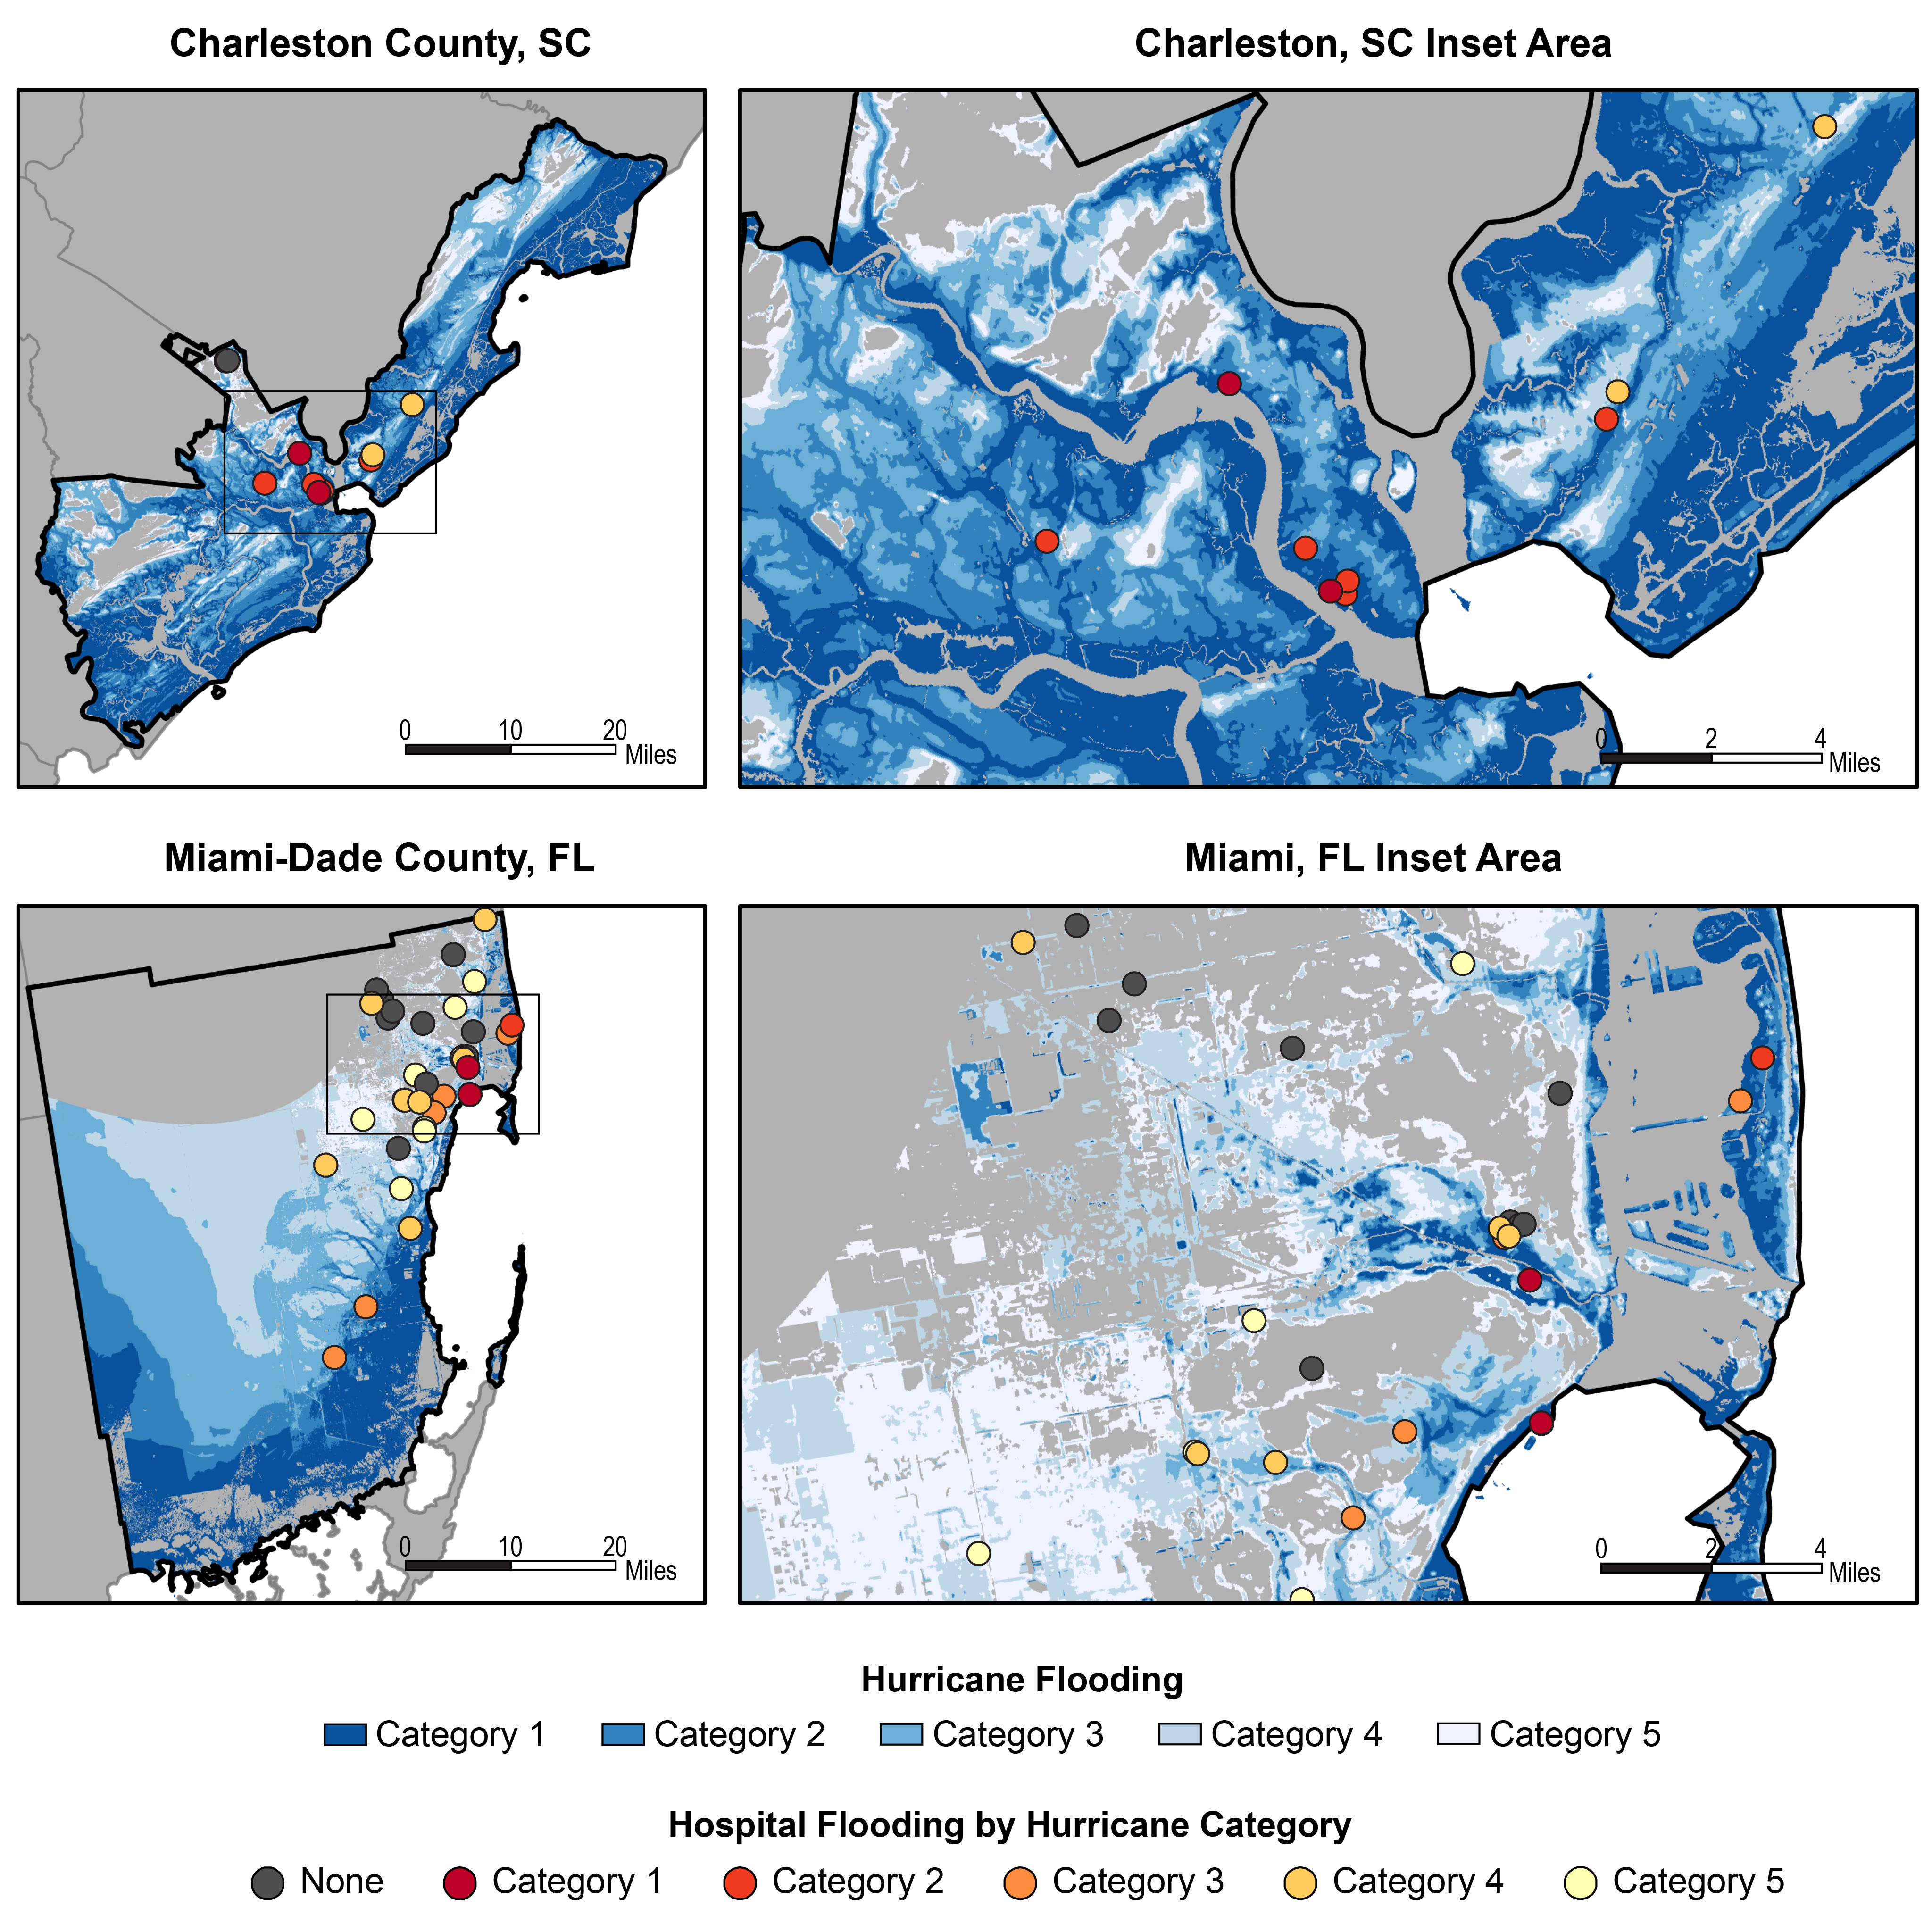 Projected flood effects on hospitals in Miami and Charleston